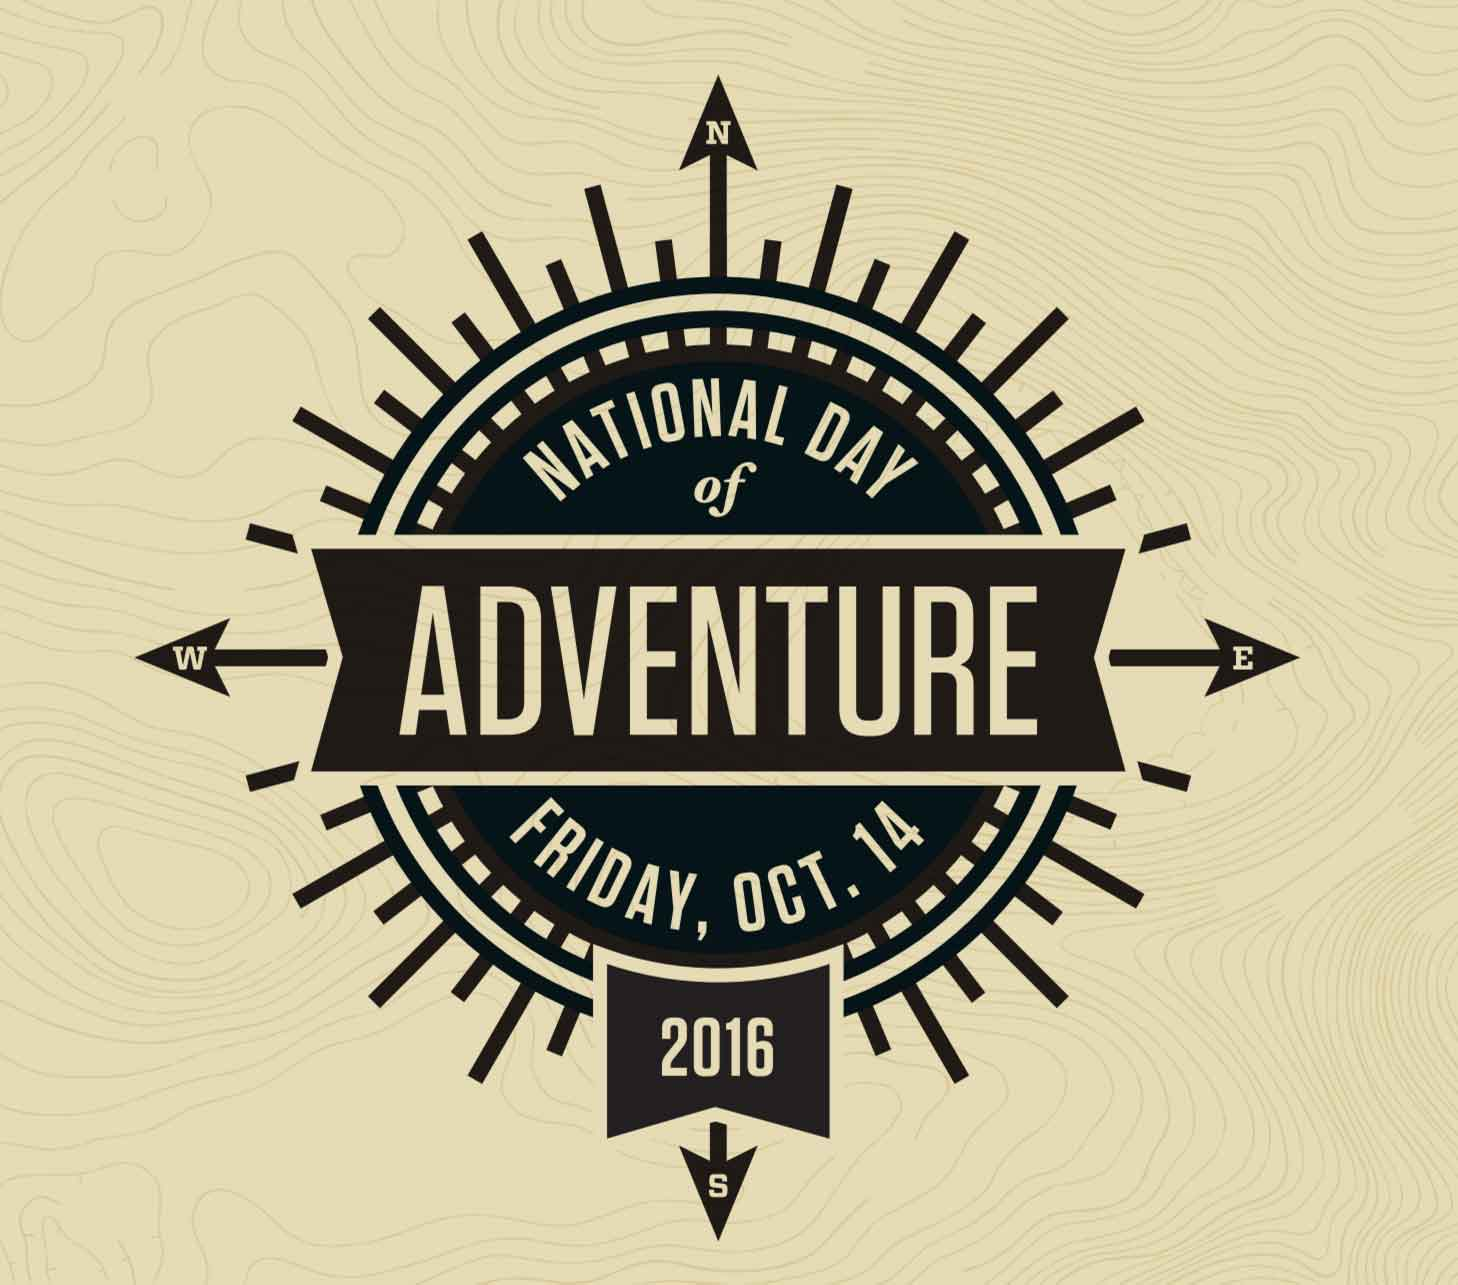 Oct 14th Proclaimed National Day Of Adventure Gearjunkie